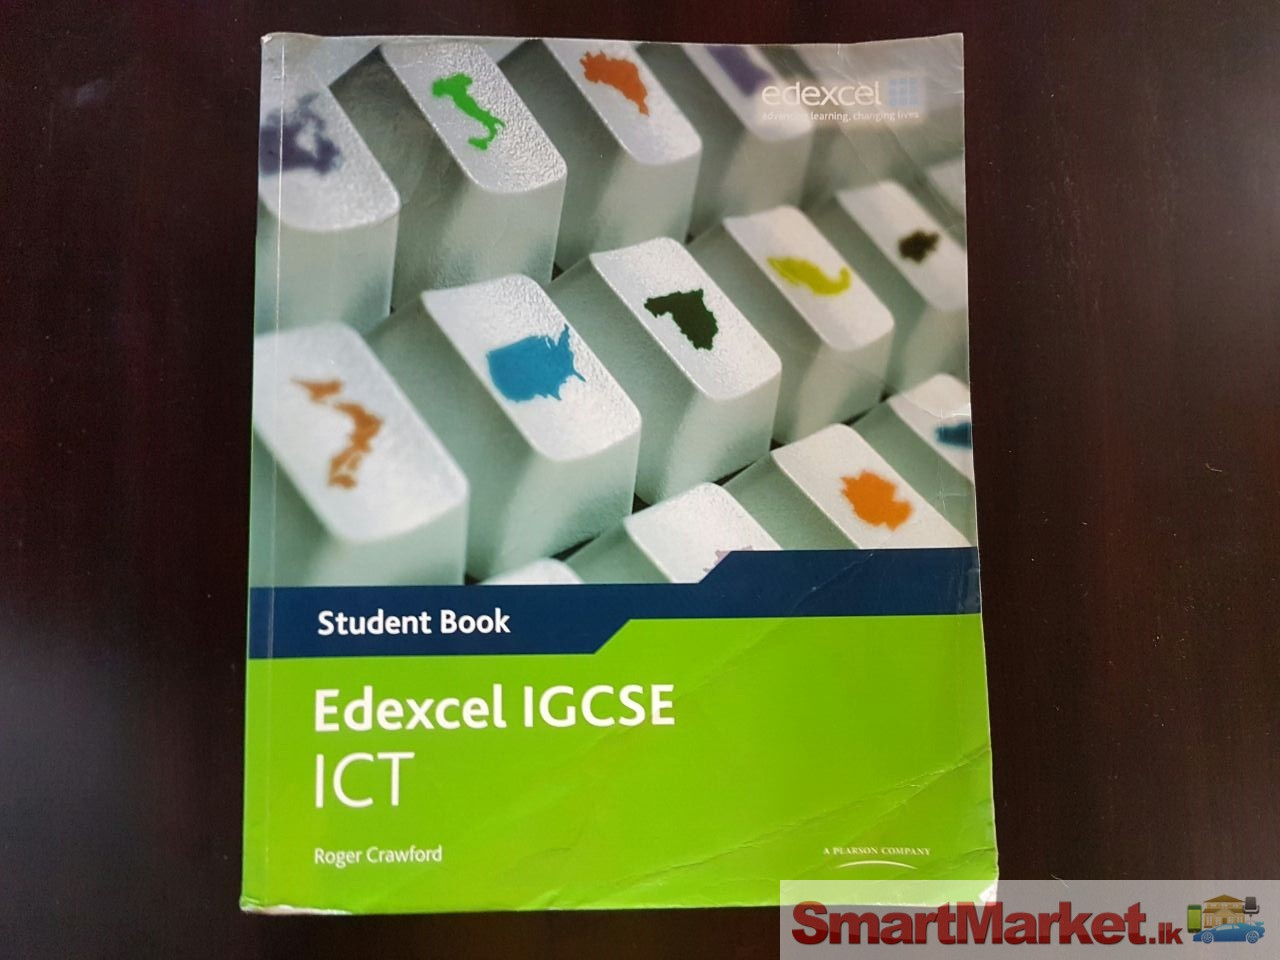 ict coursework gcse edexcel Find great deals on ebay for gcse ict and mens new listing edexcel international gcse ict revision guide print and gcse ict coursework (gcse success.